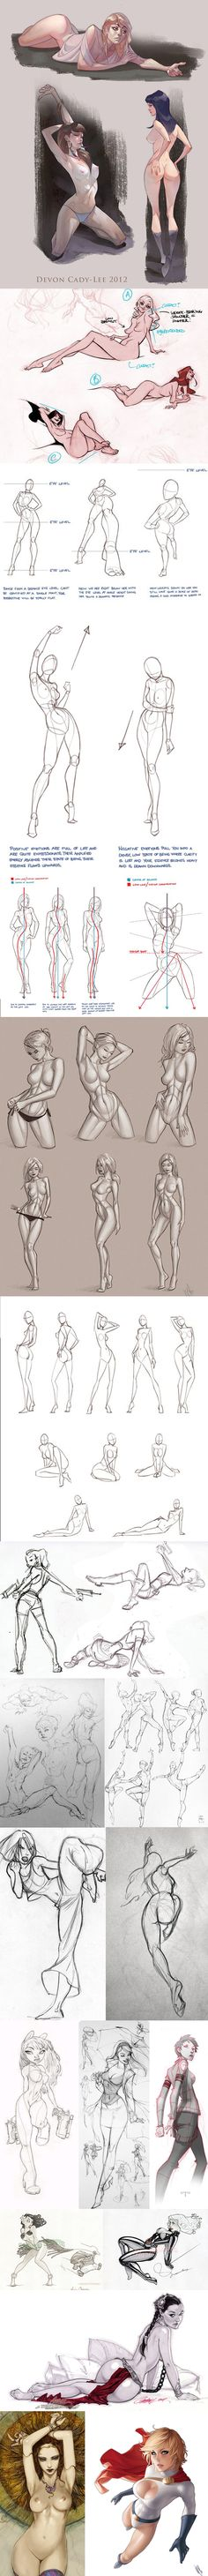 great pose info - female Body study - anatomical reference - woman in different positions - drawing reference Drawing Poses, Drawing Tips, Drawing Reference, Drawing Sketches, Drawings, Sketching, Anatomy Reference, Body Drawing, Anatomy Drawing